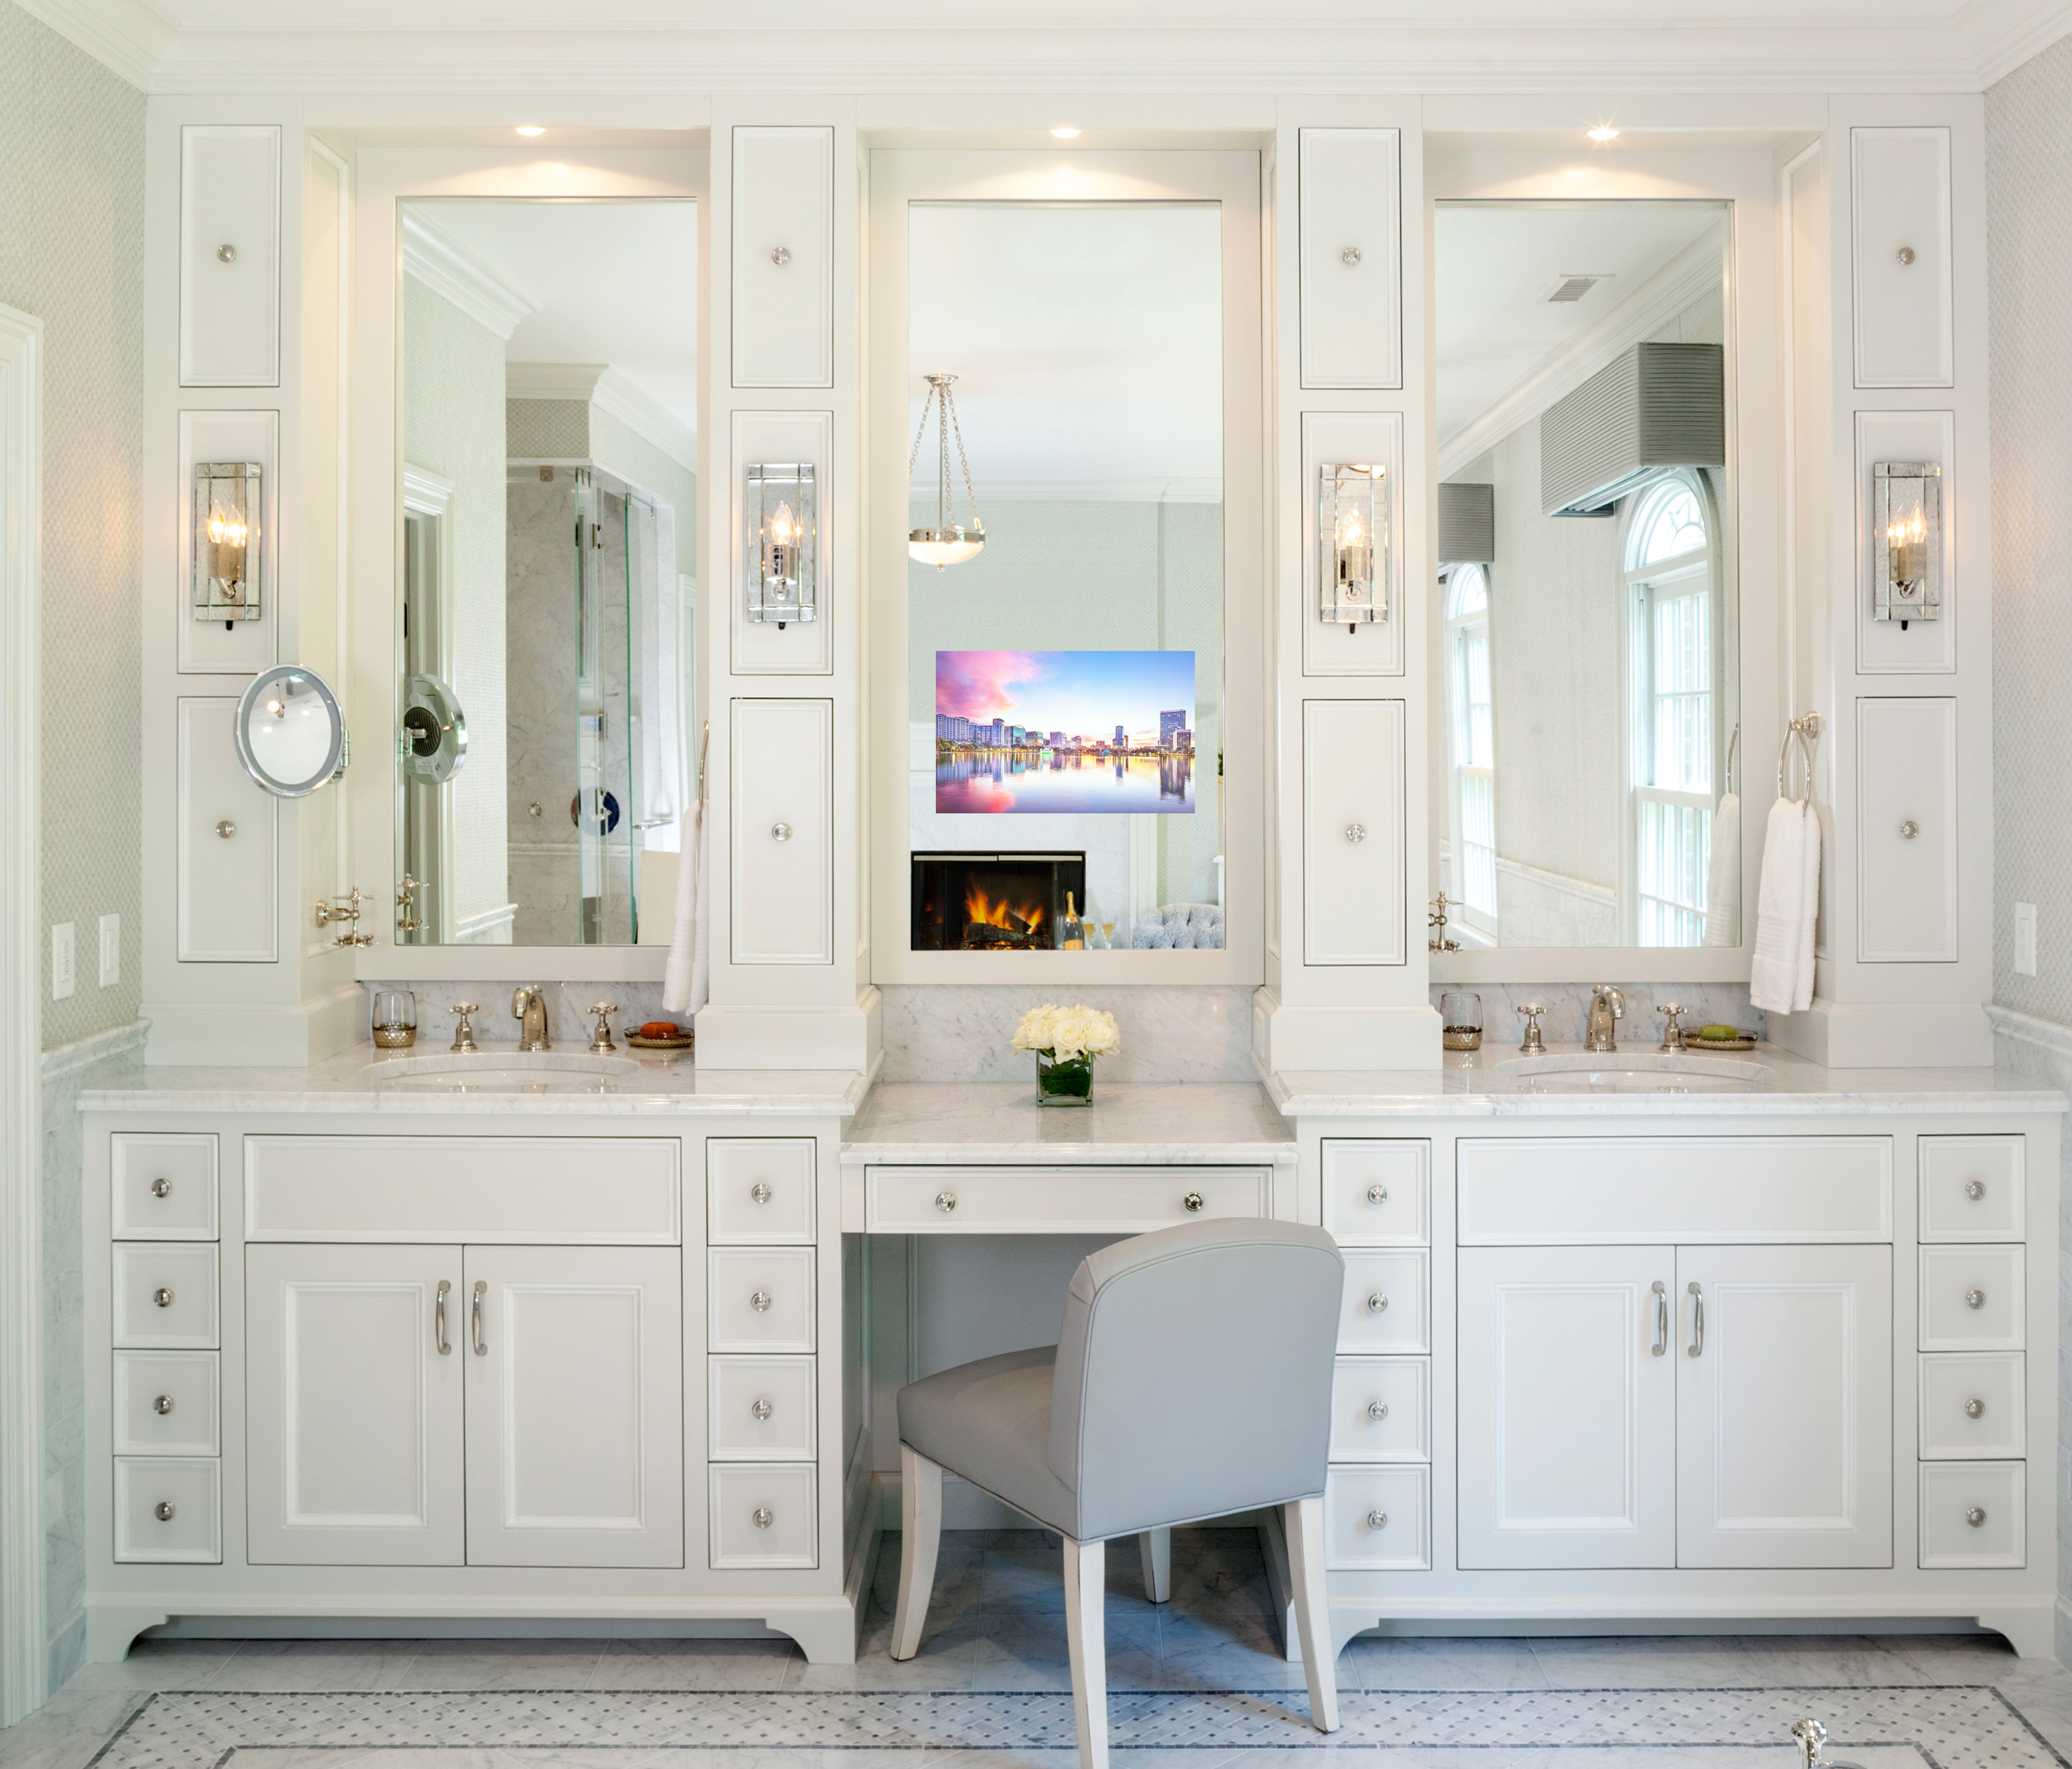 This classic master bathroom features a Seura TV mirror with Vanishing Vanity Glass in the center of a long vanity.